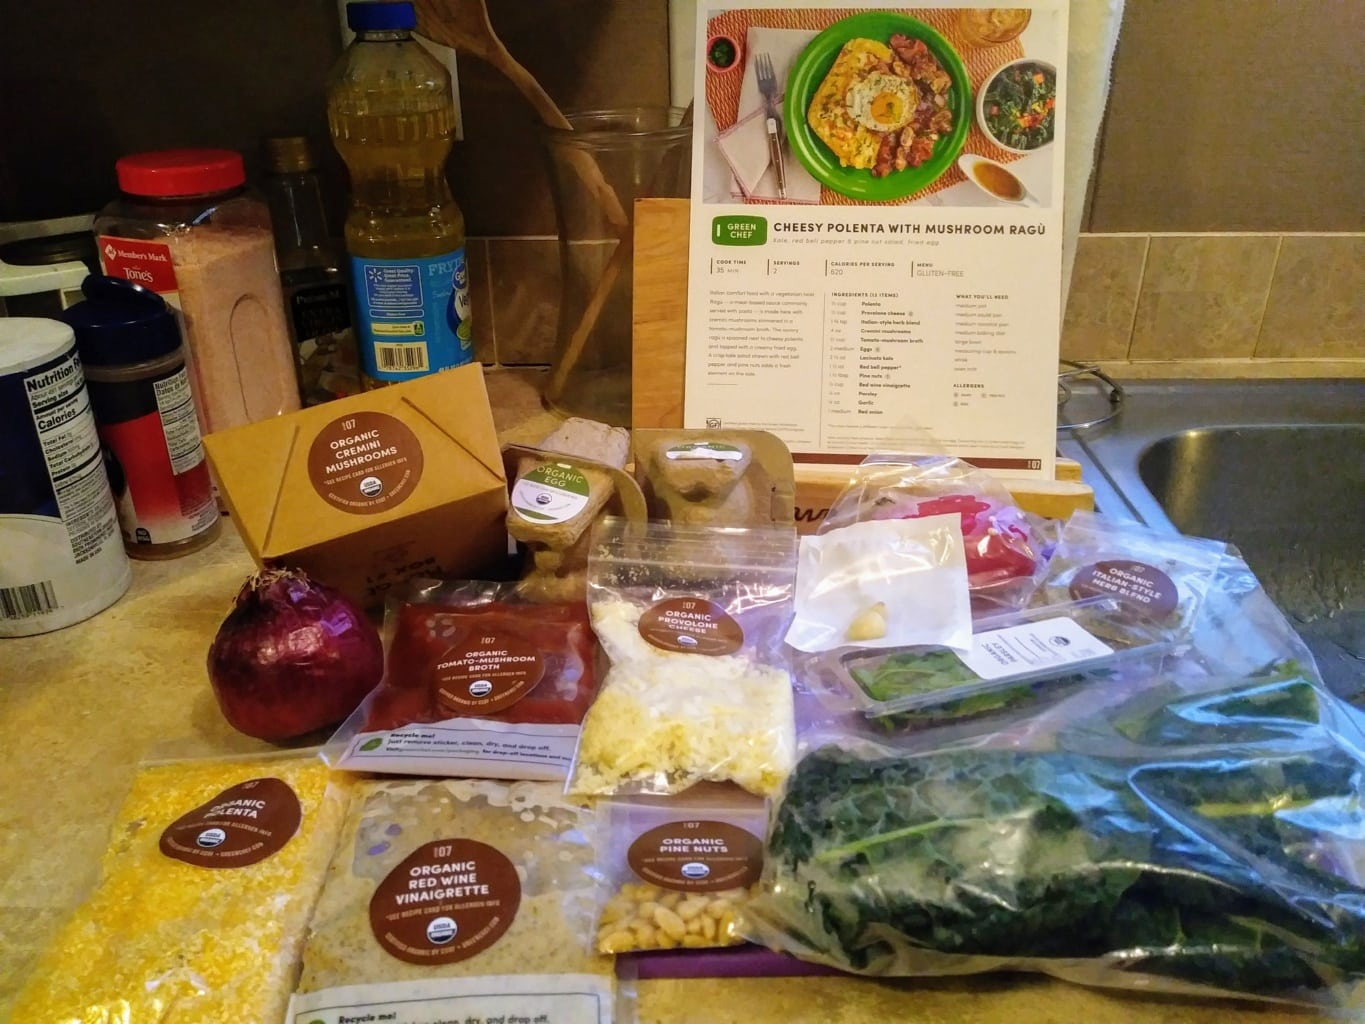 Cheesy Polenta ingredients